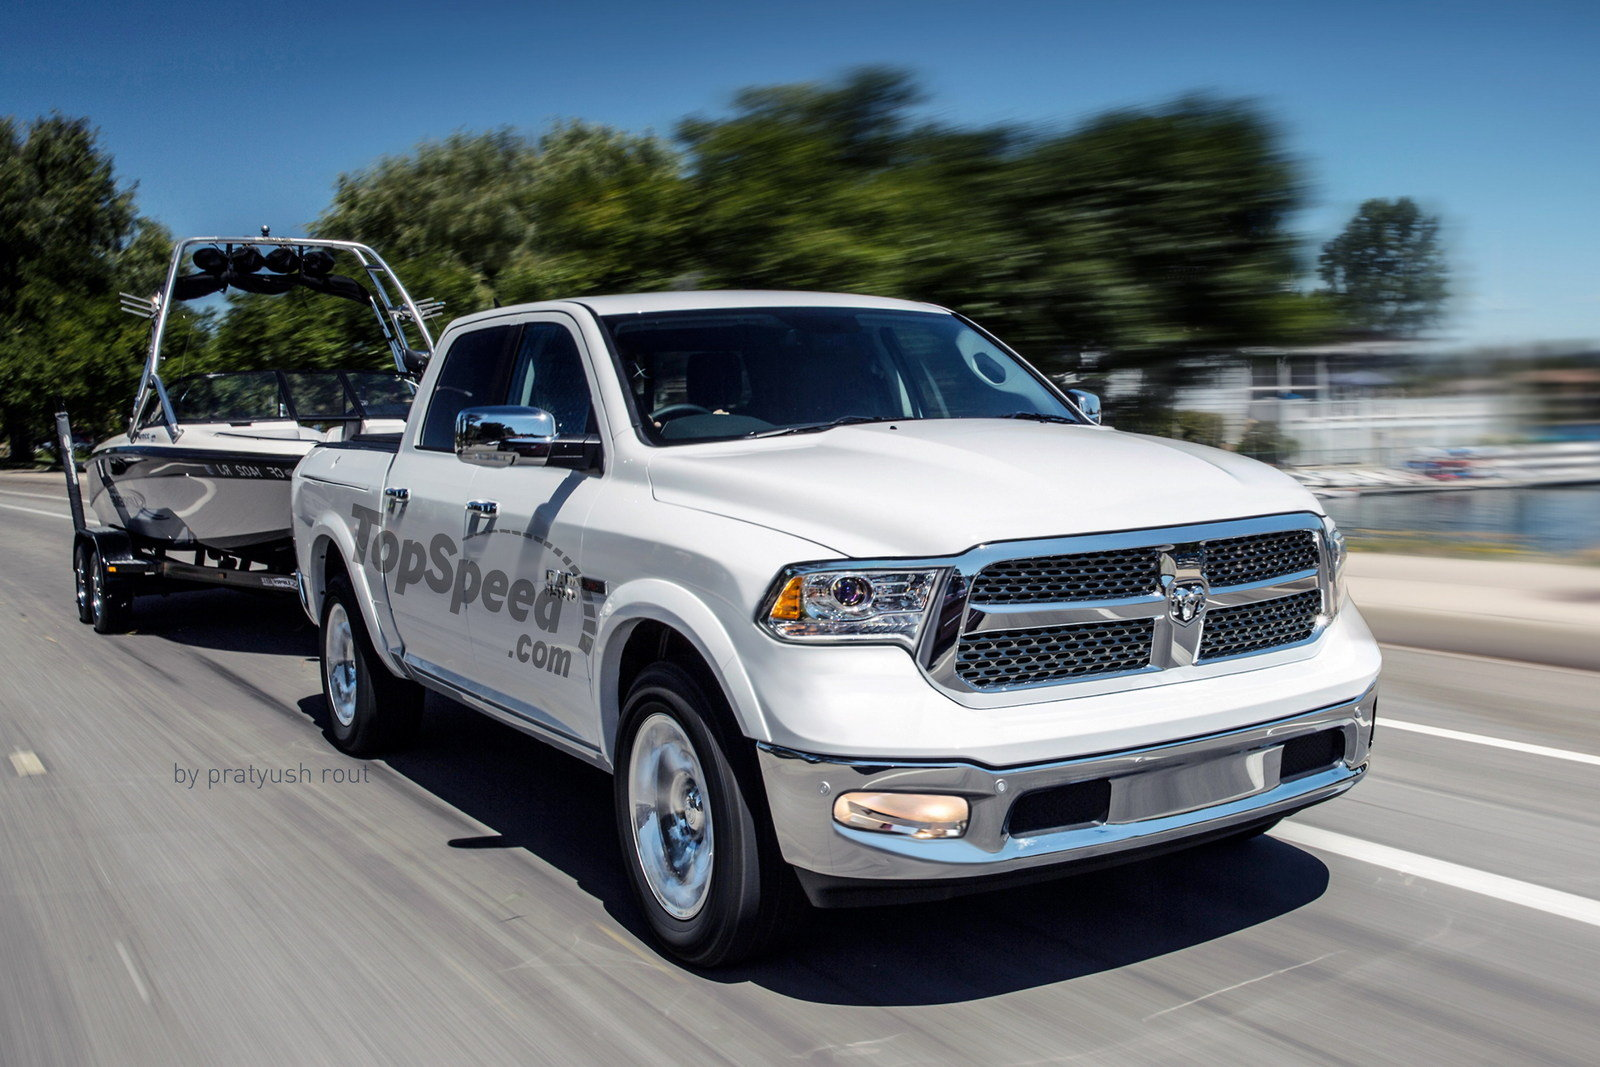 2019 ram 1500 picture 689360 truck review top speed. Black Bedroom Furniture Sets. Home Design Ideas